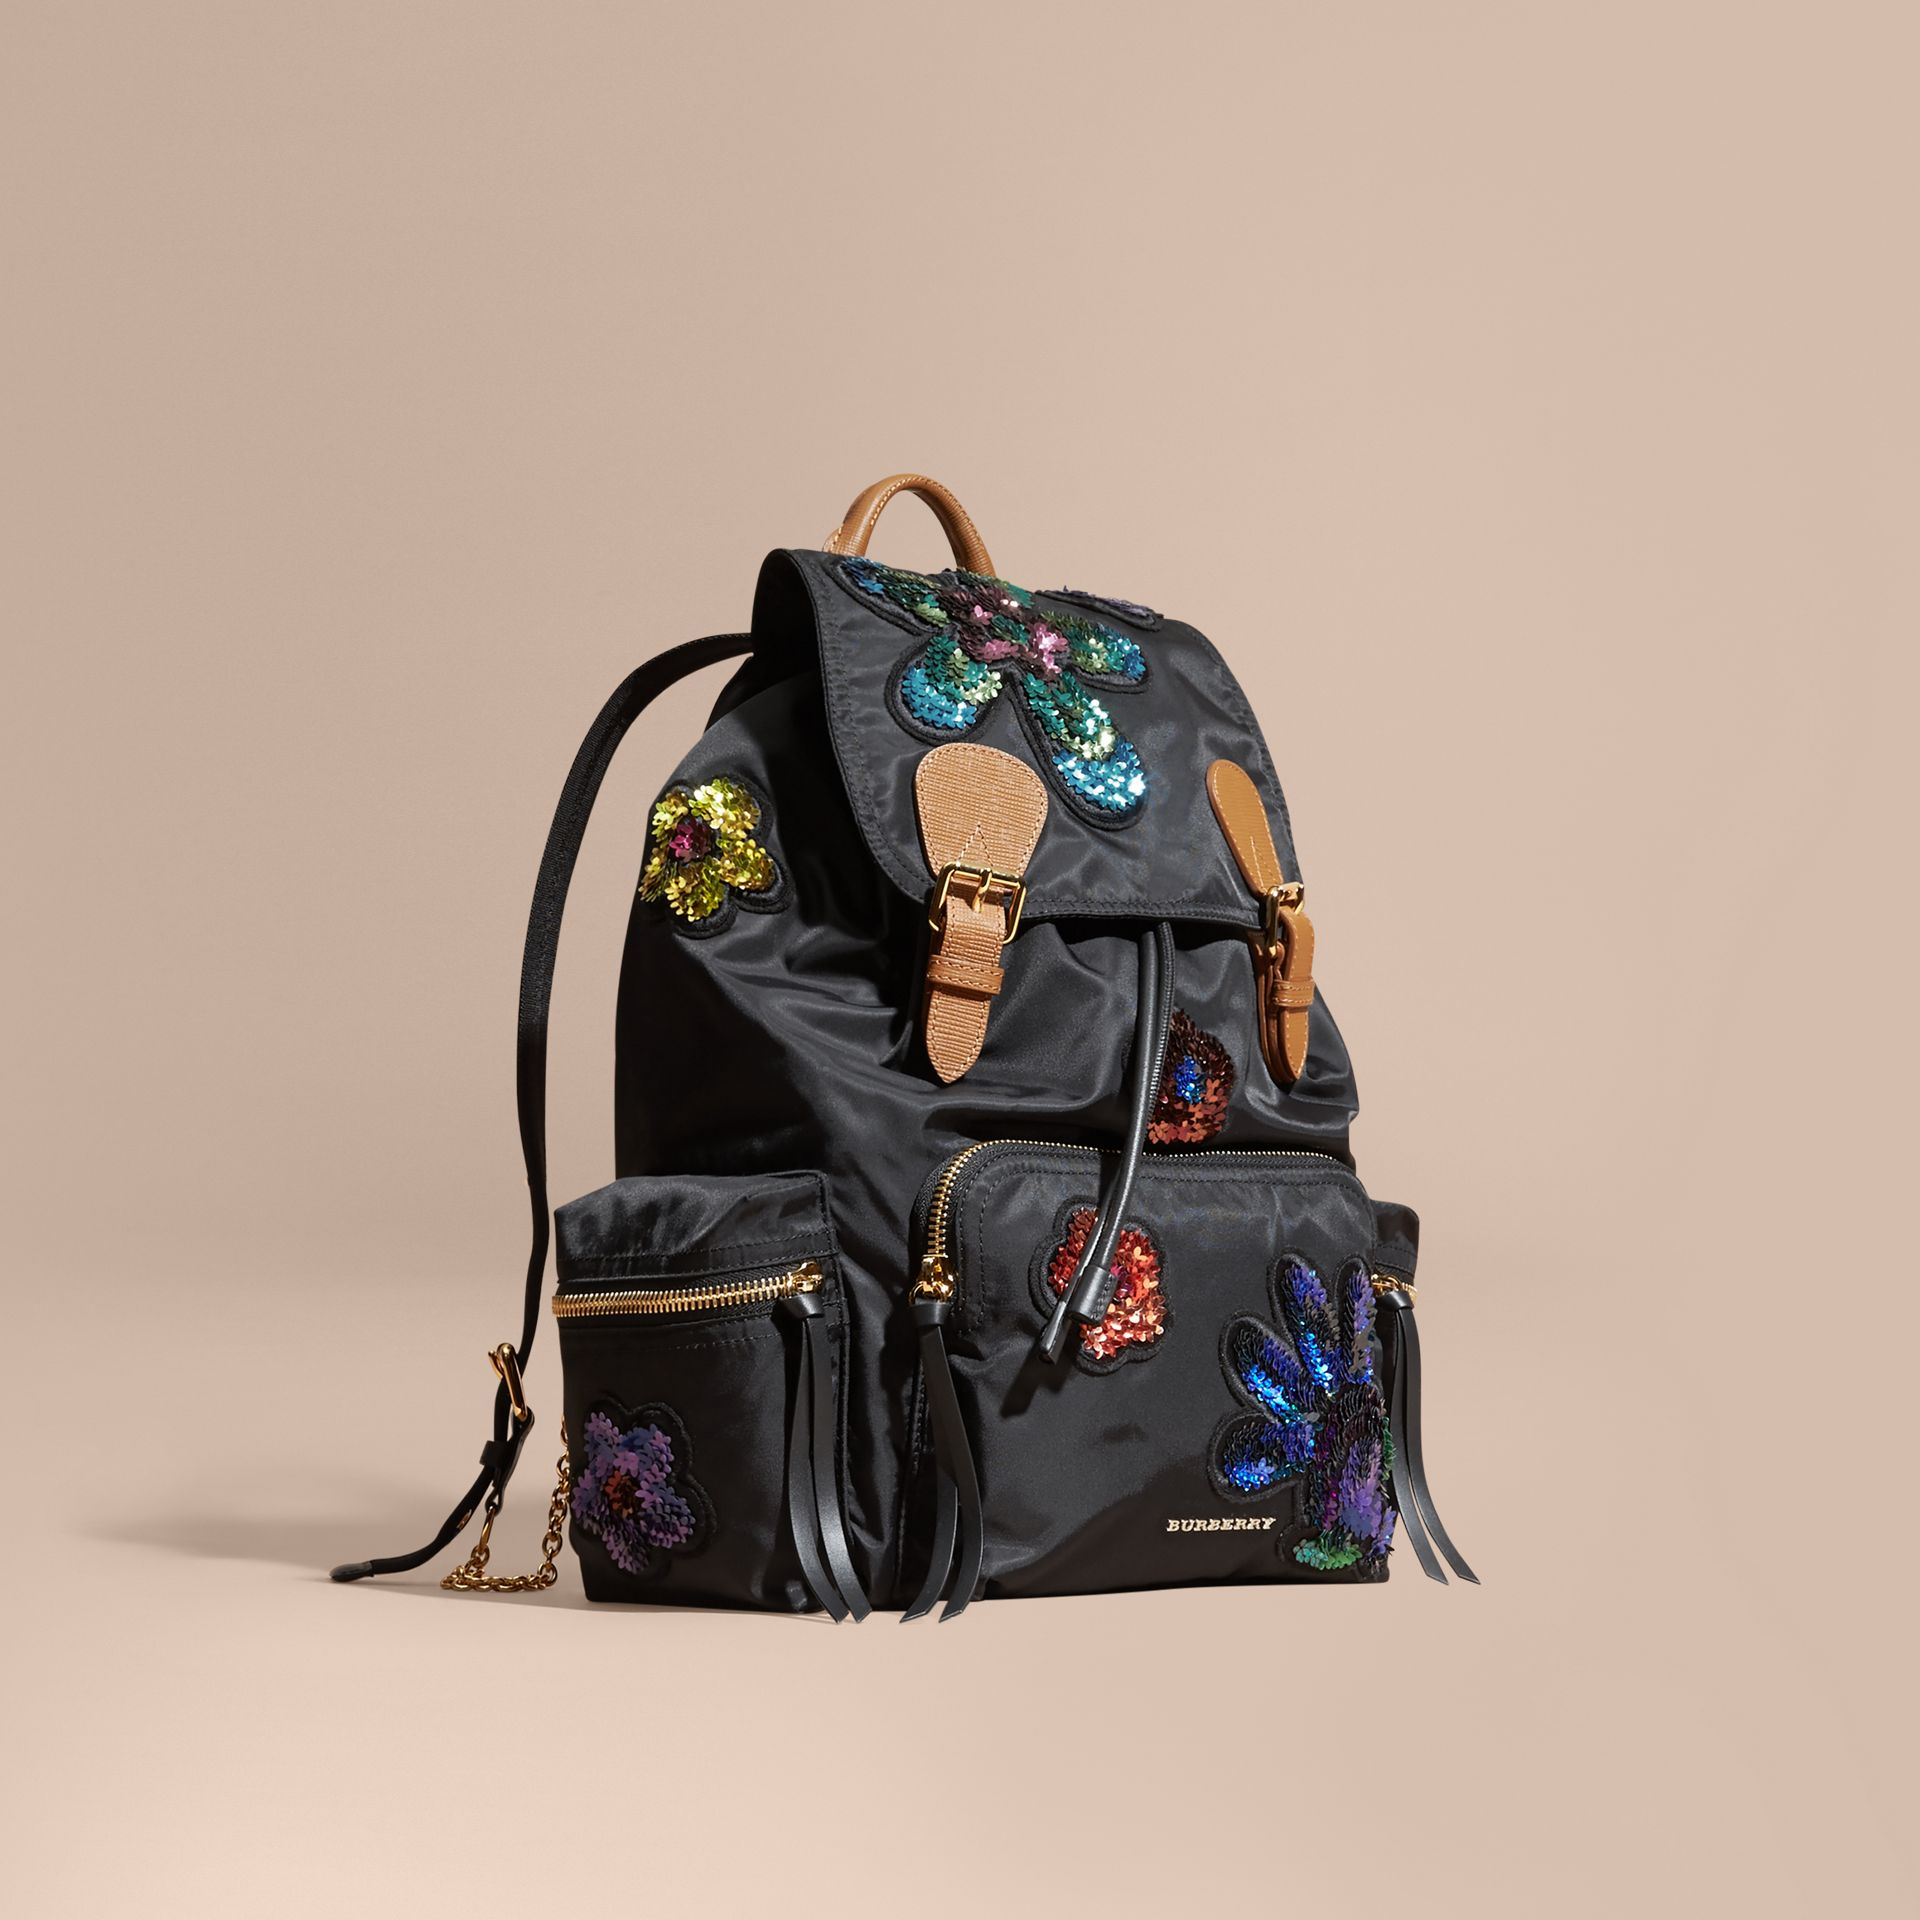 Noir Grand sac The Rucksack en nylon technique avec sequins à motif floral - photo de la galerie 1